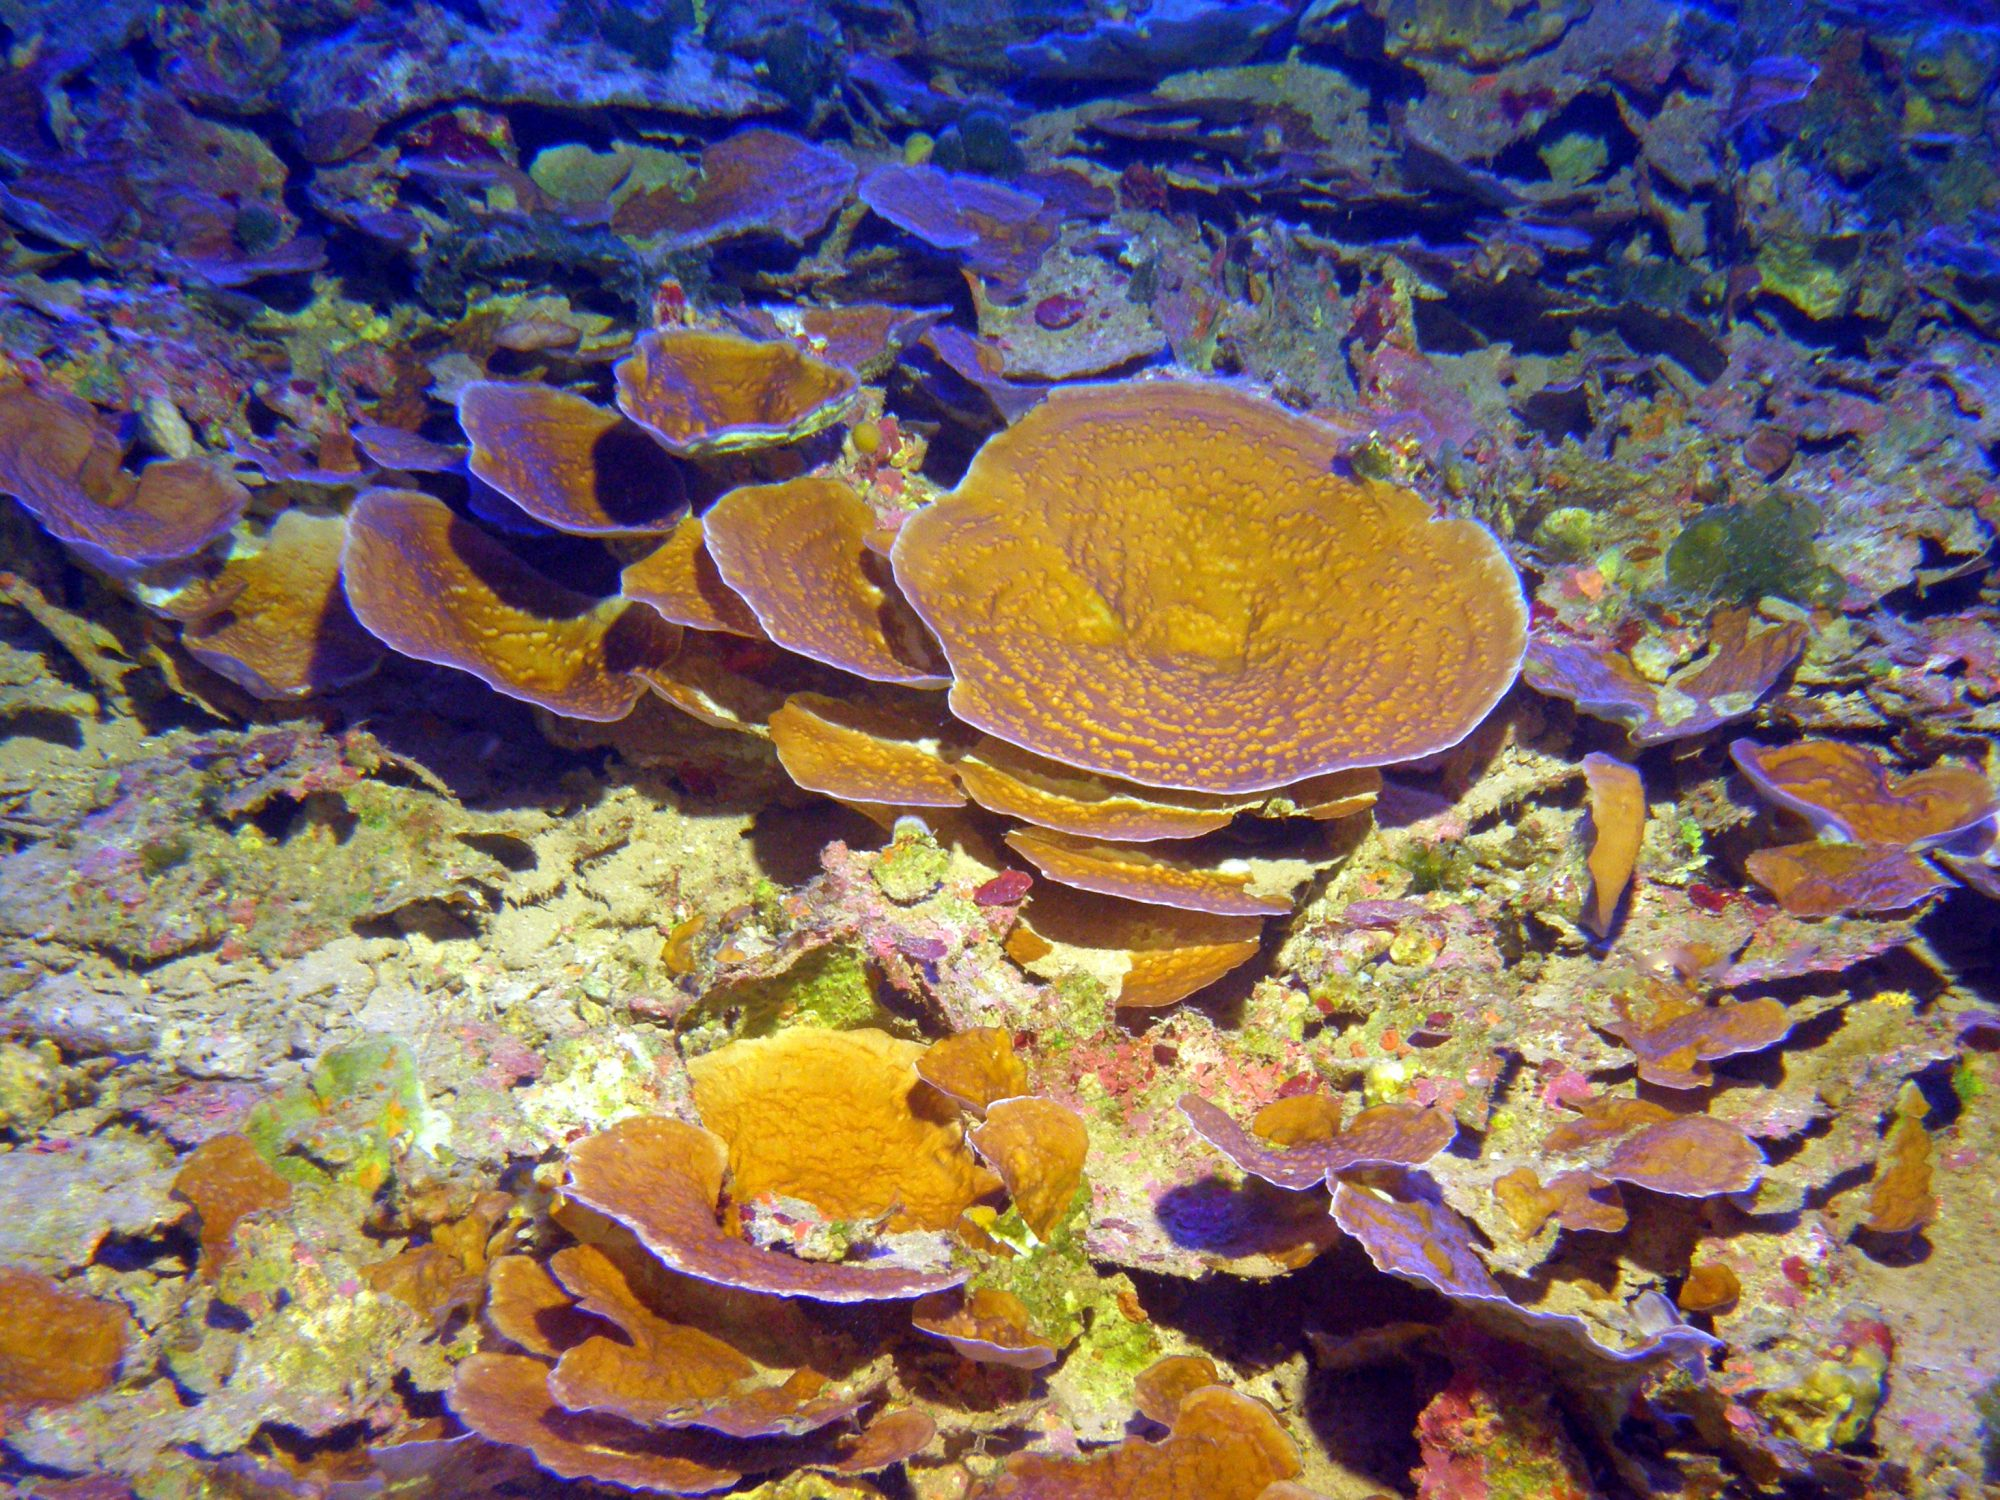 Corals that live in the mesophotic zone